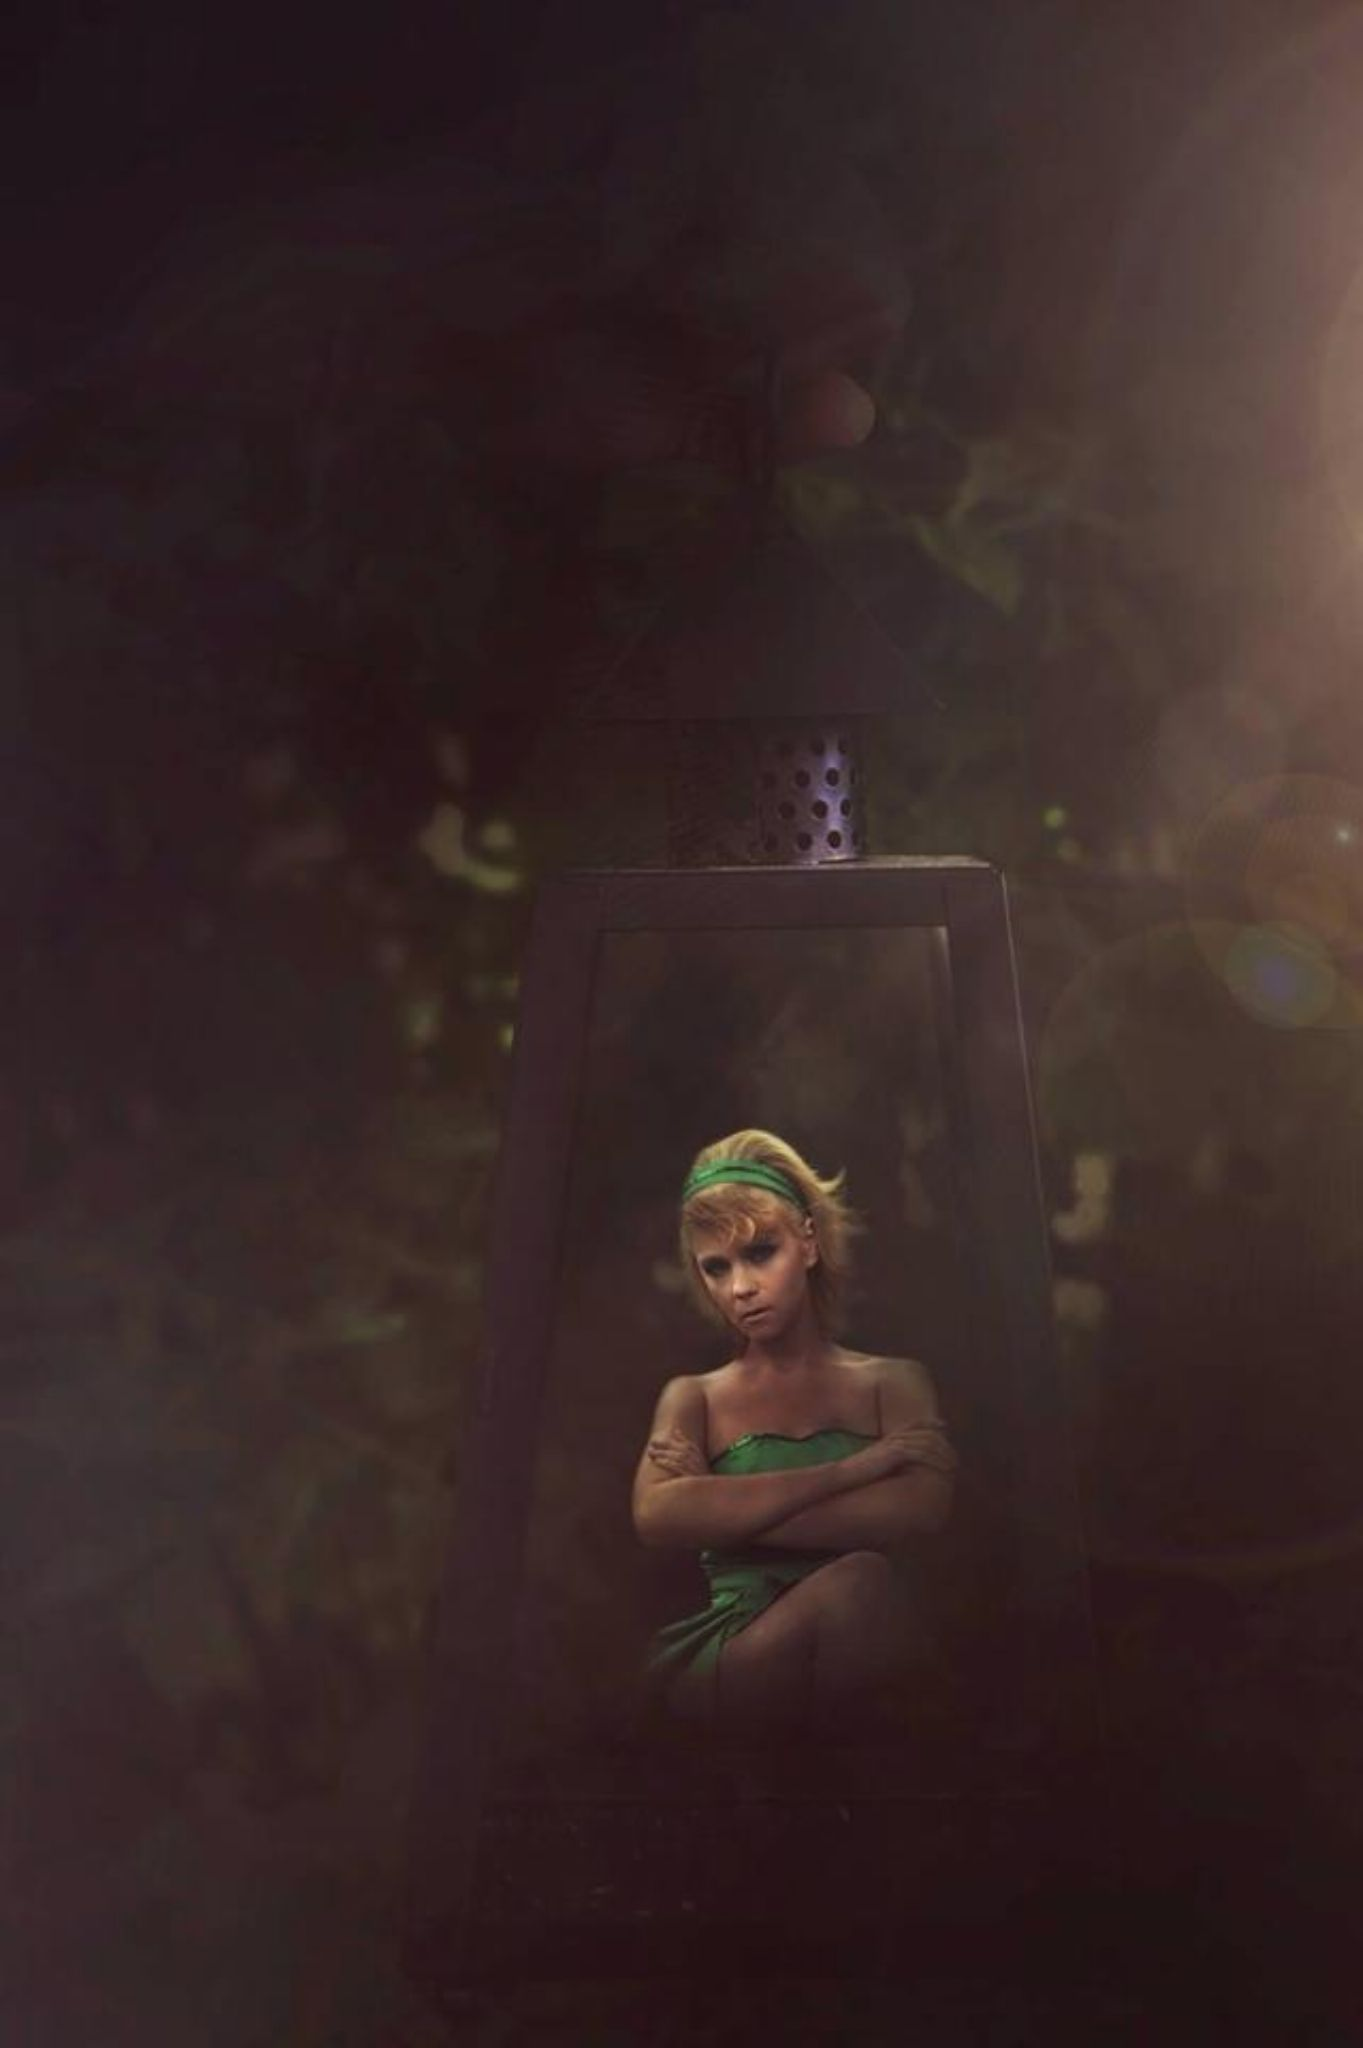 fairytale shoot with kelly robitaille by IcEyFiRe86